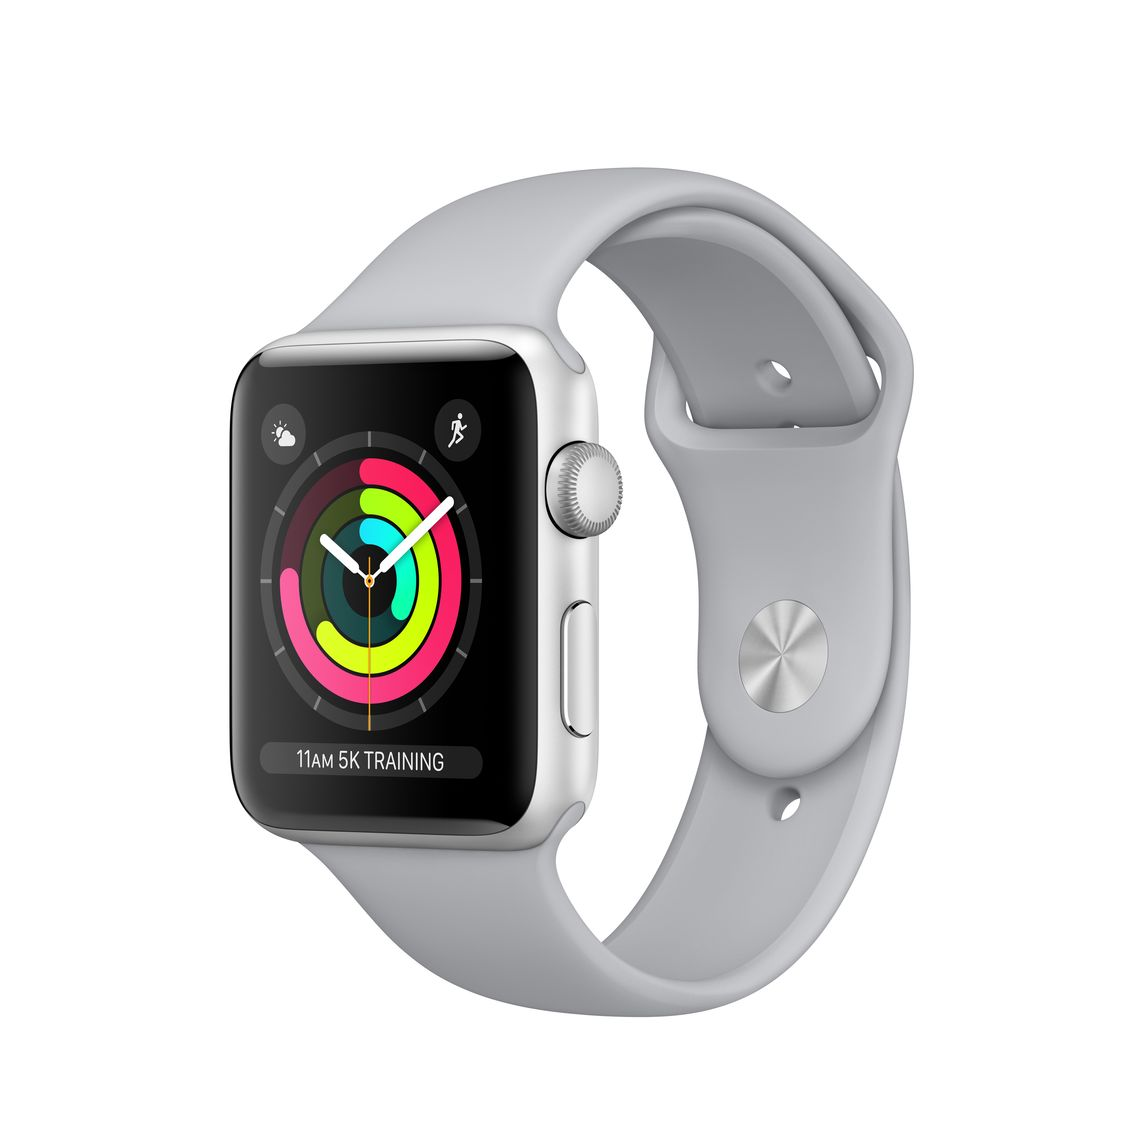 separation shoes b6cd5 19c38 Refurbished Apple Watch Series 3 GPS, 42mm Silver Aluminum Case with Fog  Sport Band